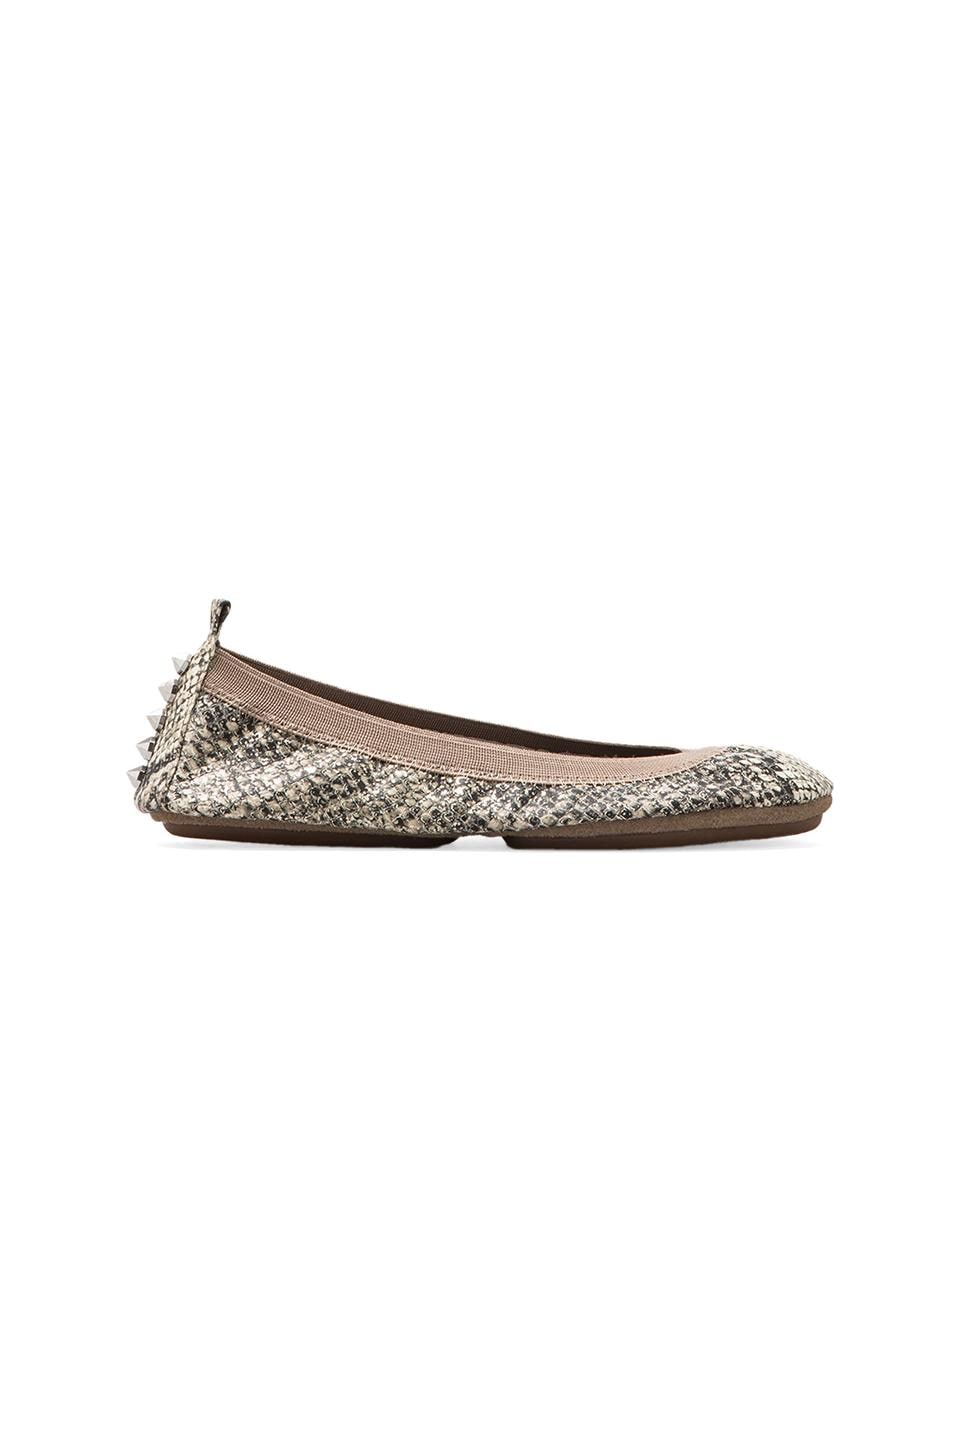 Yosi Samra Studded Back Ballet Flat in Silver Serpent